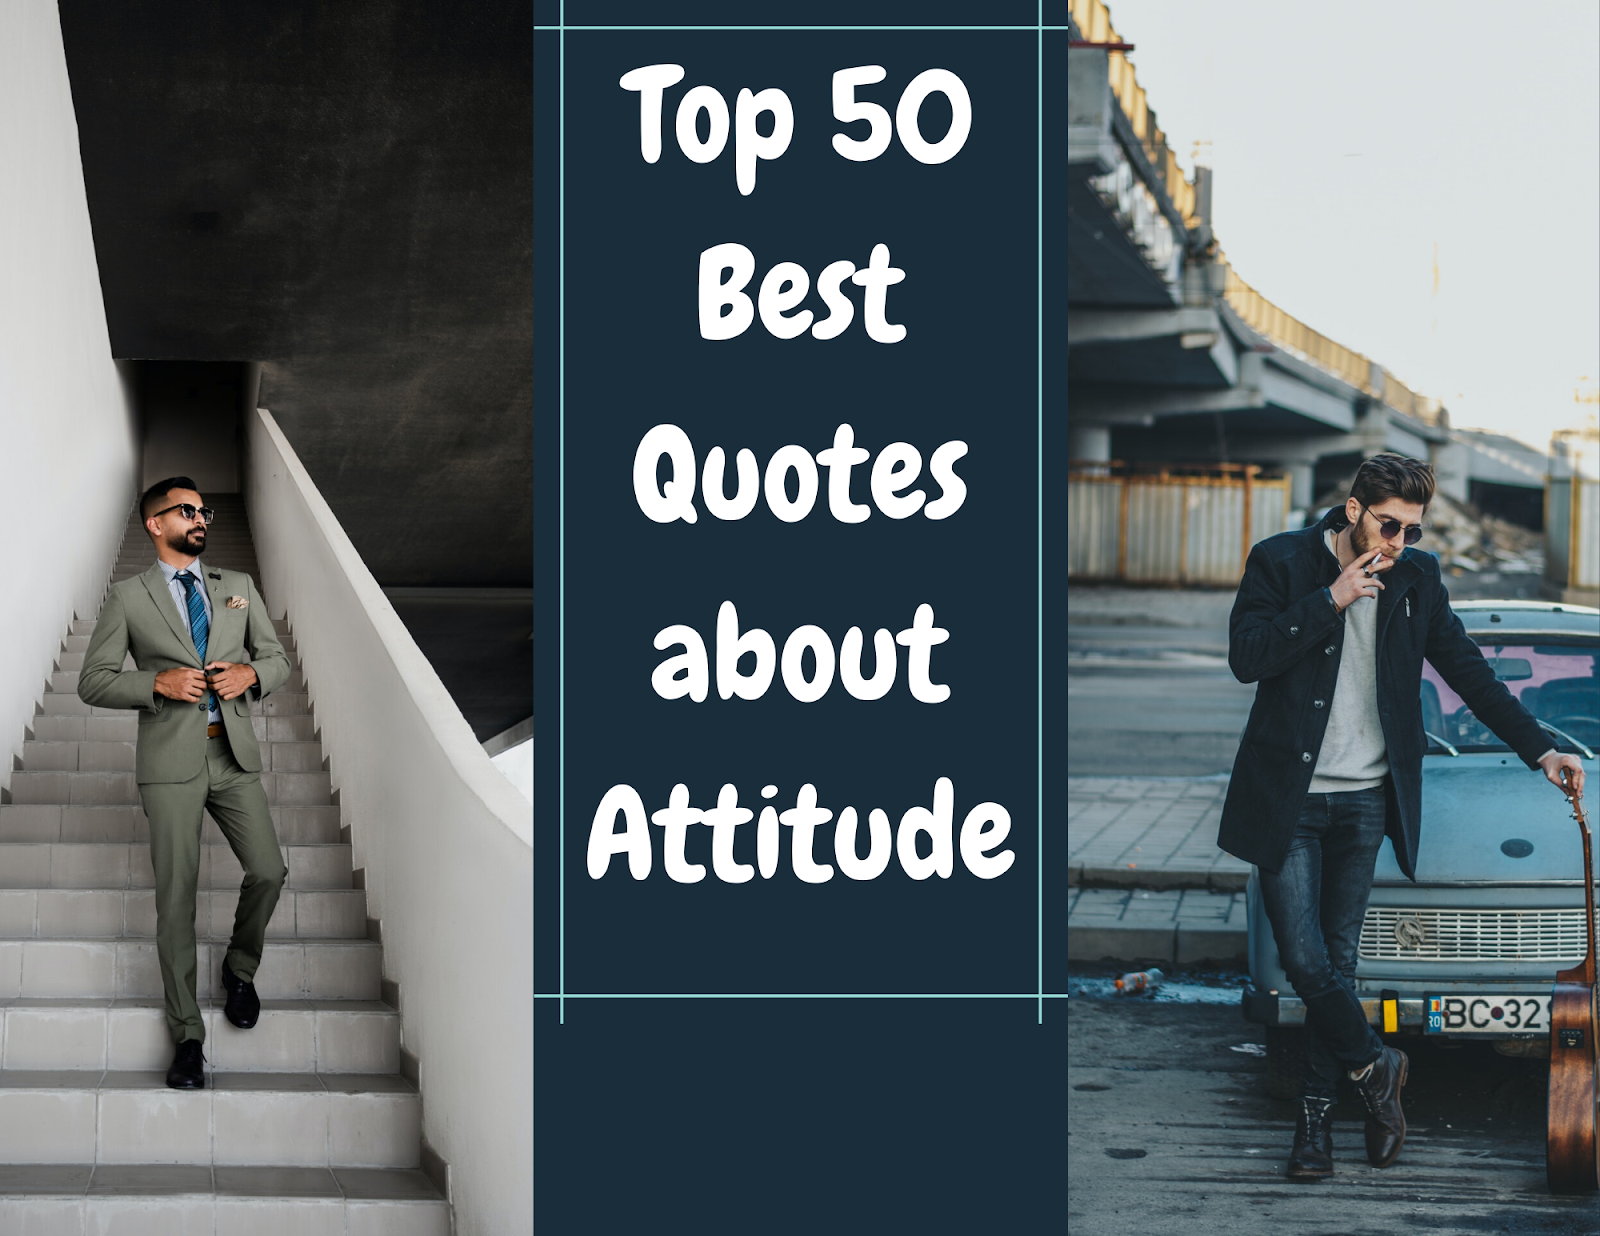 Top 50 Best Quotes about Attitude